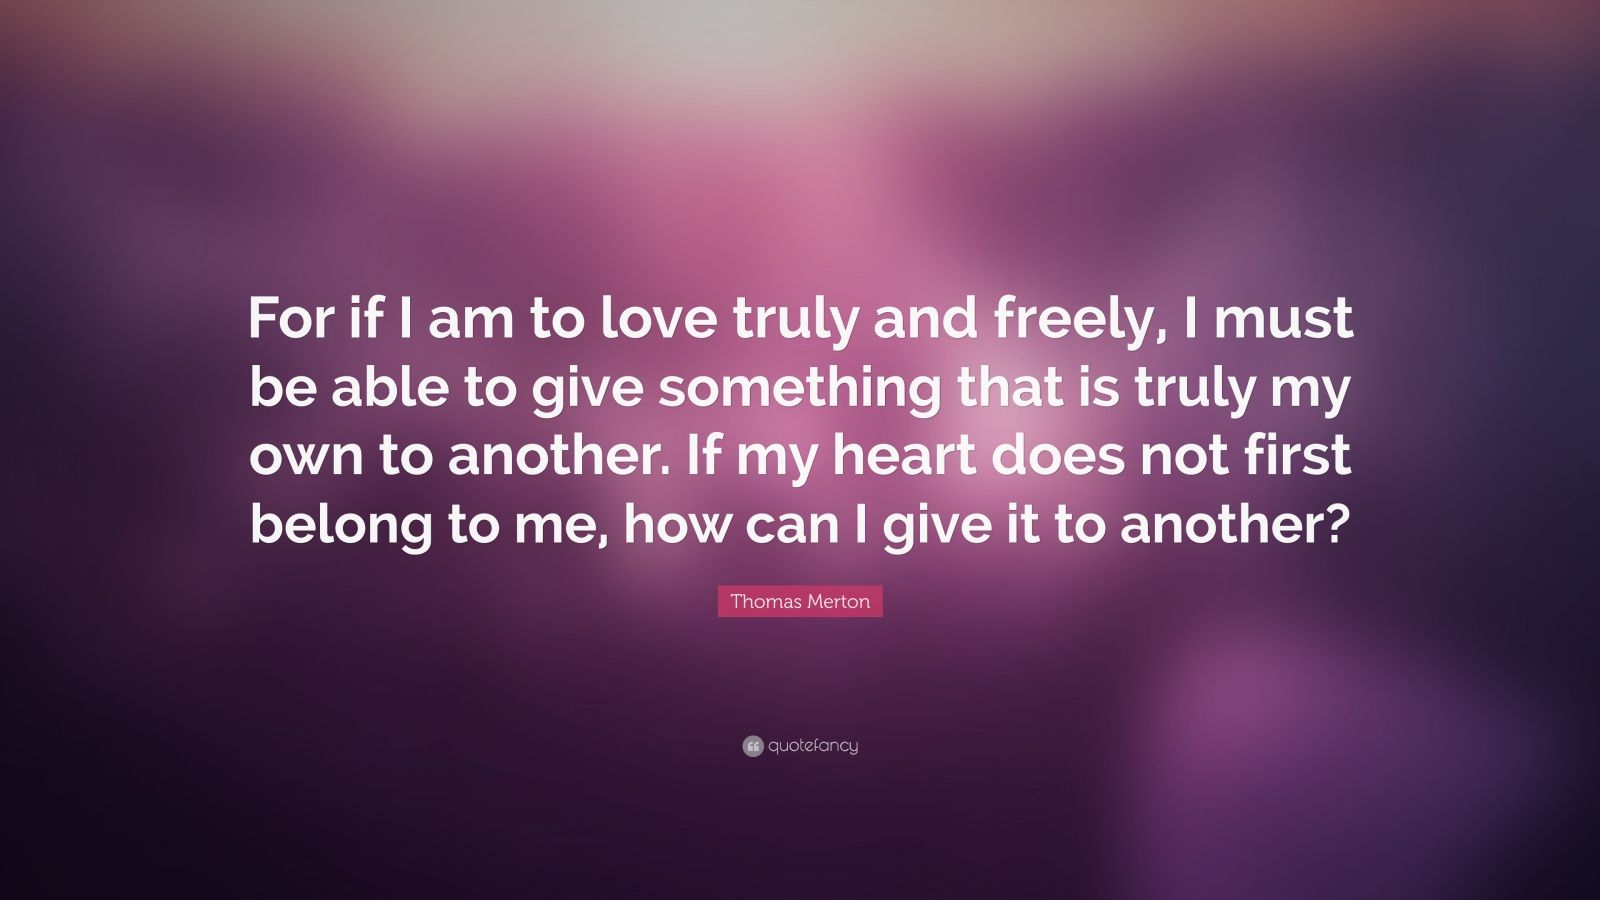 "Thomas Merton Quote: ""For if I am to love truly and freely, I must be able to give something that is truly my own to another. If my heart does not first belong to me, how can I give it to another?"""